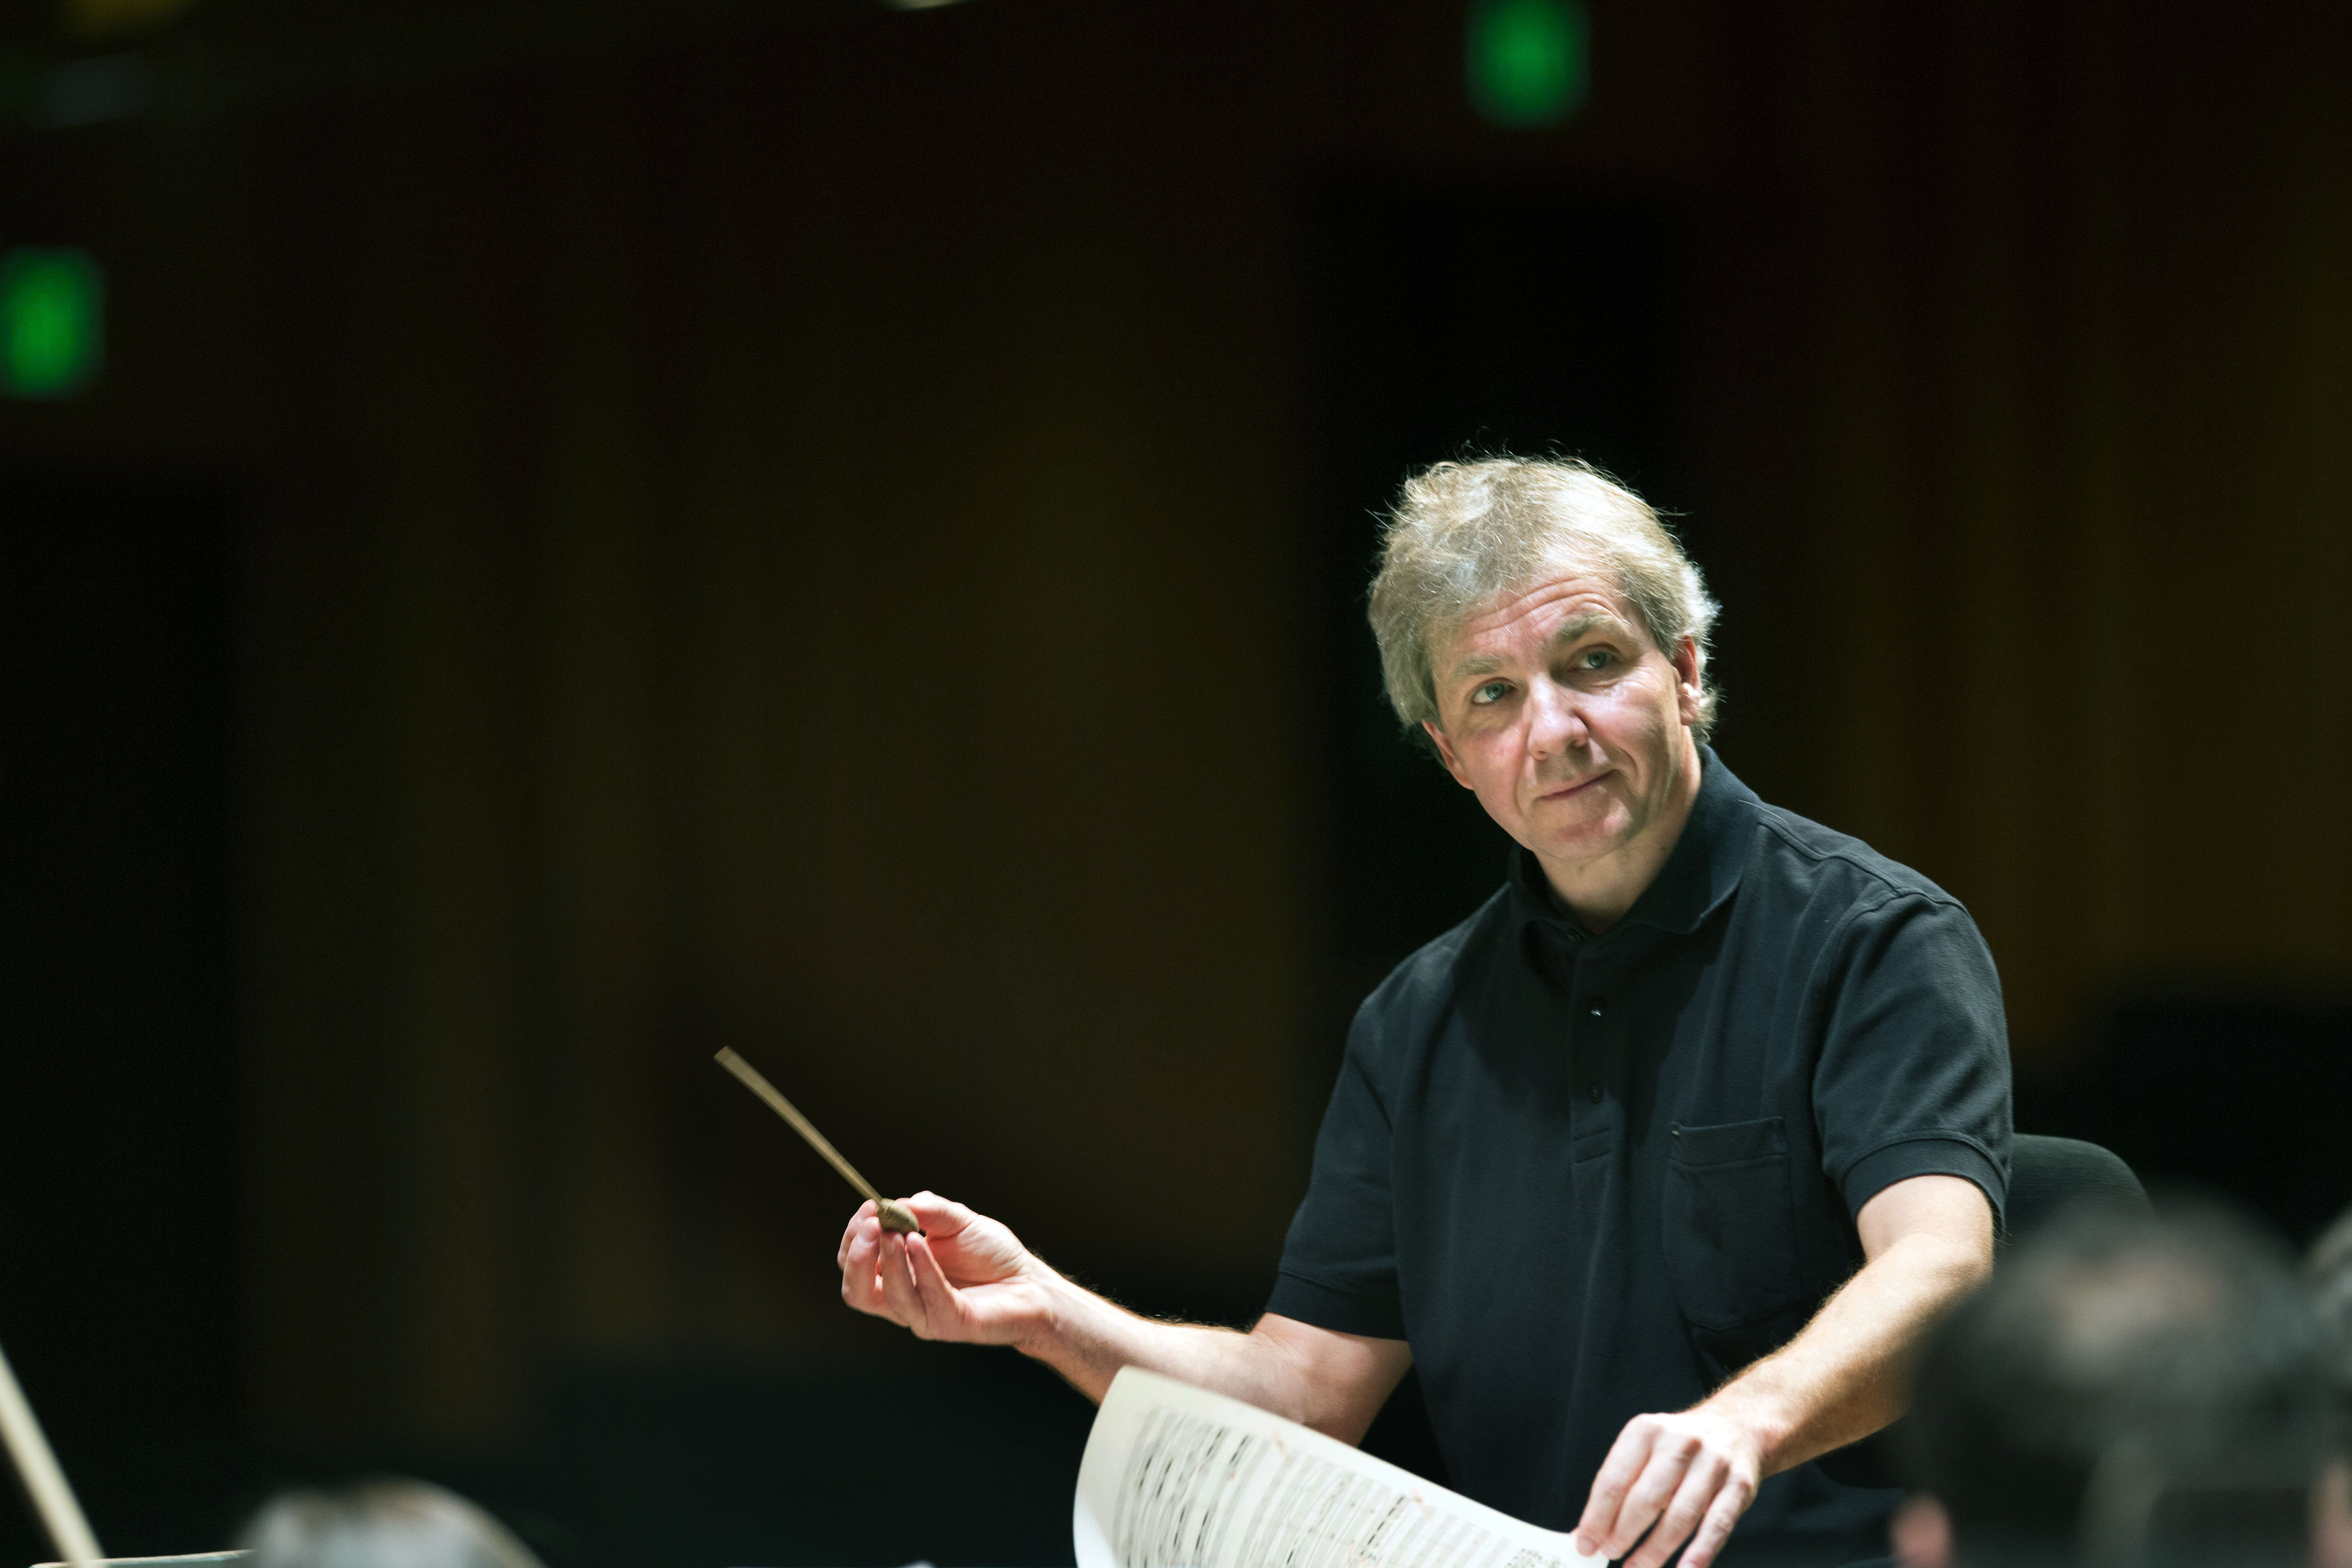 Thierry Fischer, music director of the Utah Symphony Orchestra, conducts a practice at Abravanel Hall in Salt Lake City on Wednesday, Nov. 20, 2013. Fischer will be stepping down as music director following the 2021-22 season.